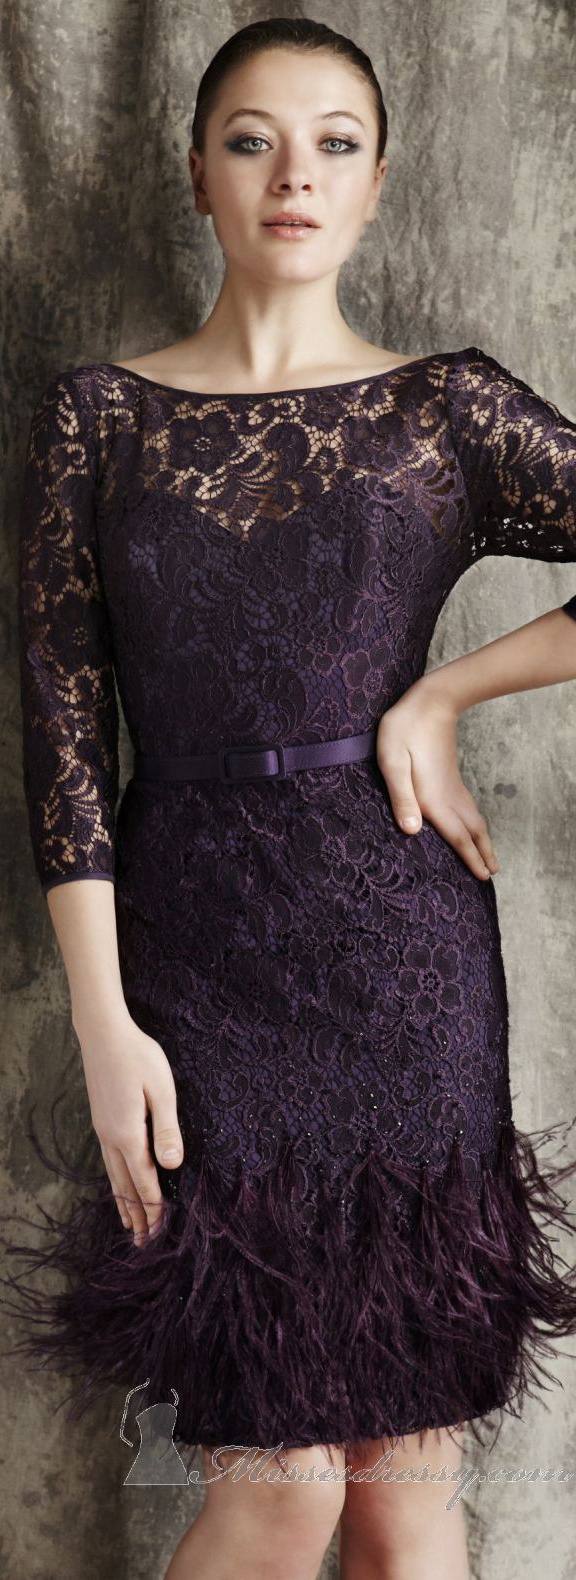 Elegant cocktail dress by Theia #plum #lace #feather <3 lovely color!